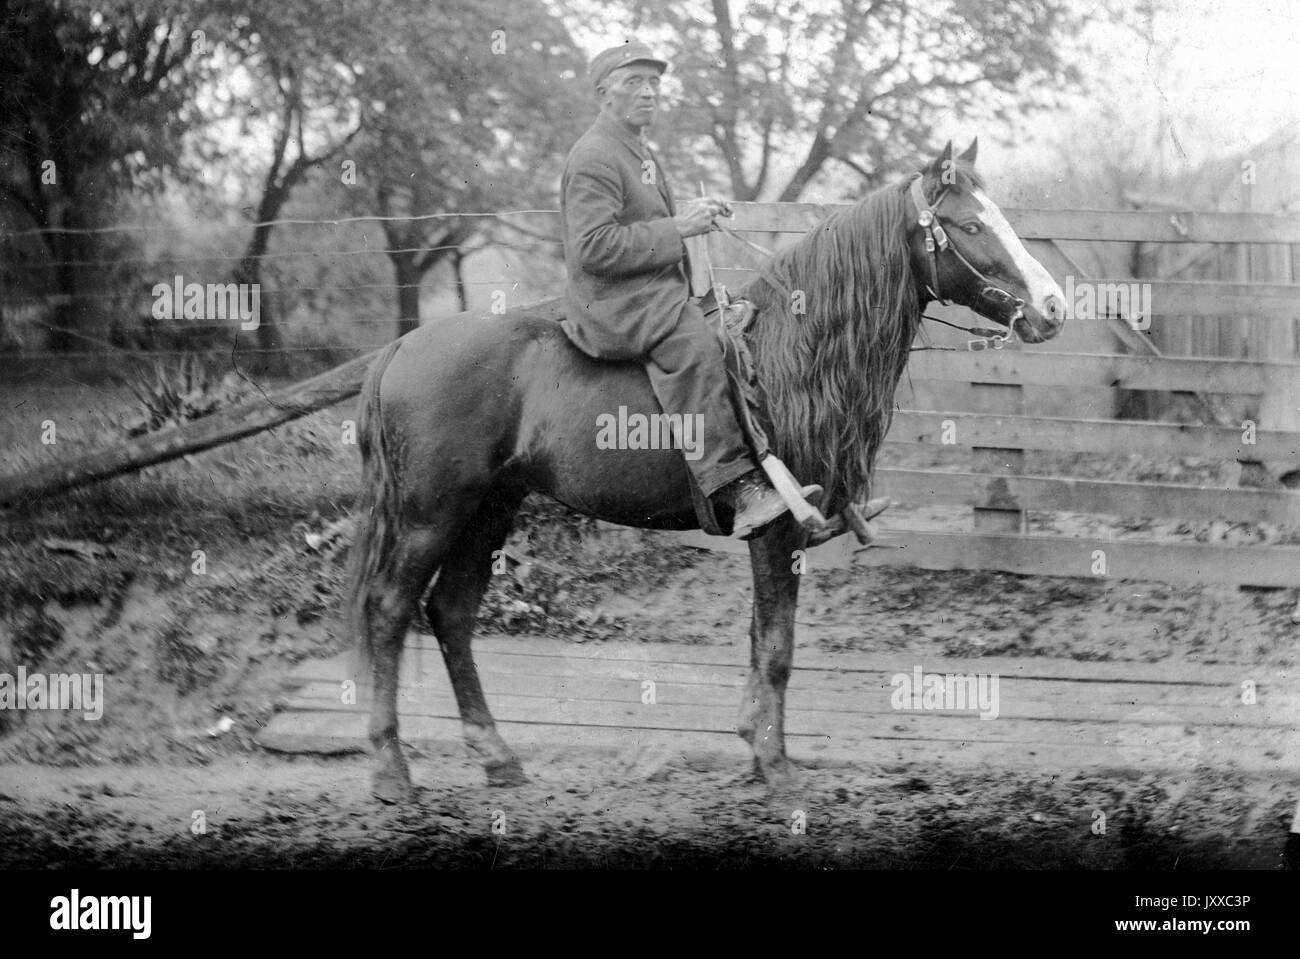 Full length sitting portrait of mature African man riding horse (Old Uncle 'Billy' on BWB's pony), wearing dark suit, glasses and hat, sitting outdoors in front of wooden fence, neutral expression, 1920. - Stock Image